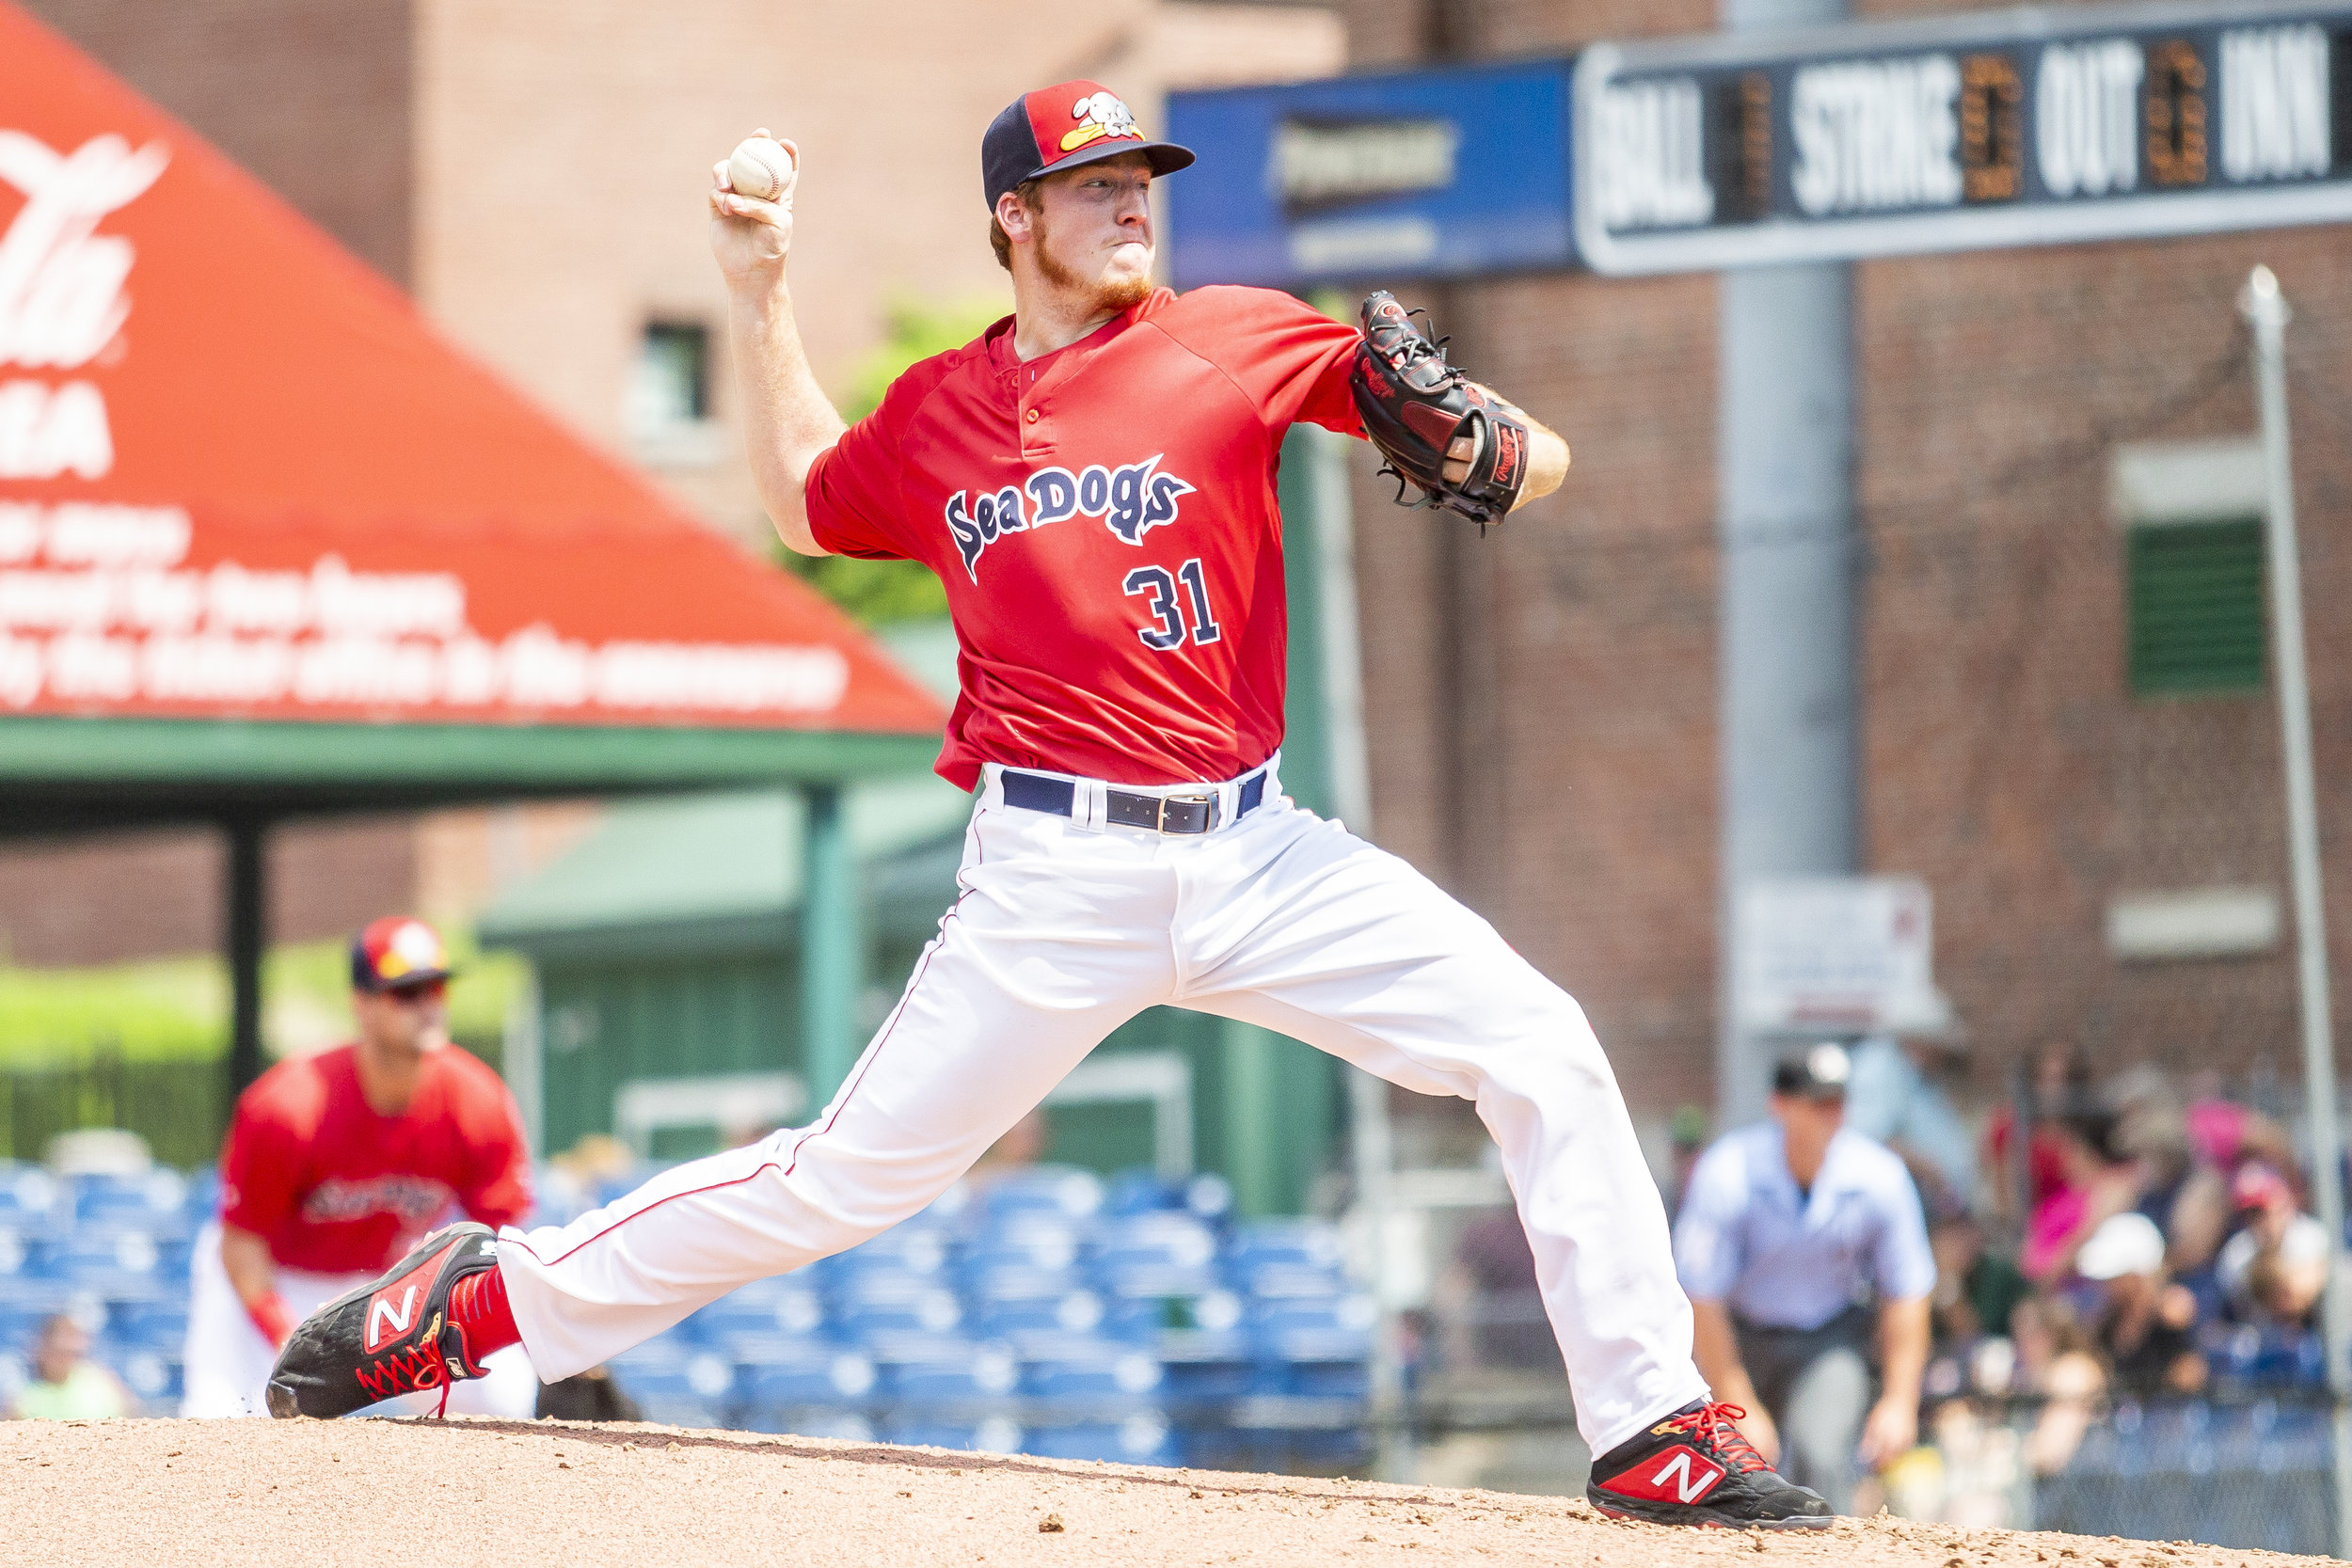 PORTLAND, ME - AUGUST 05:  Teddy Stankiewicz #31 of the Portland Sea Dogs delivers in the second inning of a game against the Richmond Flying Squirrels on August 5, 2018 in Portland, ME at Hadlock Field . (Photo by Zachary Roy/Getty Images)